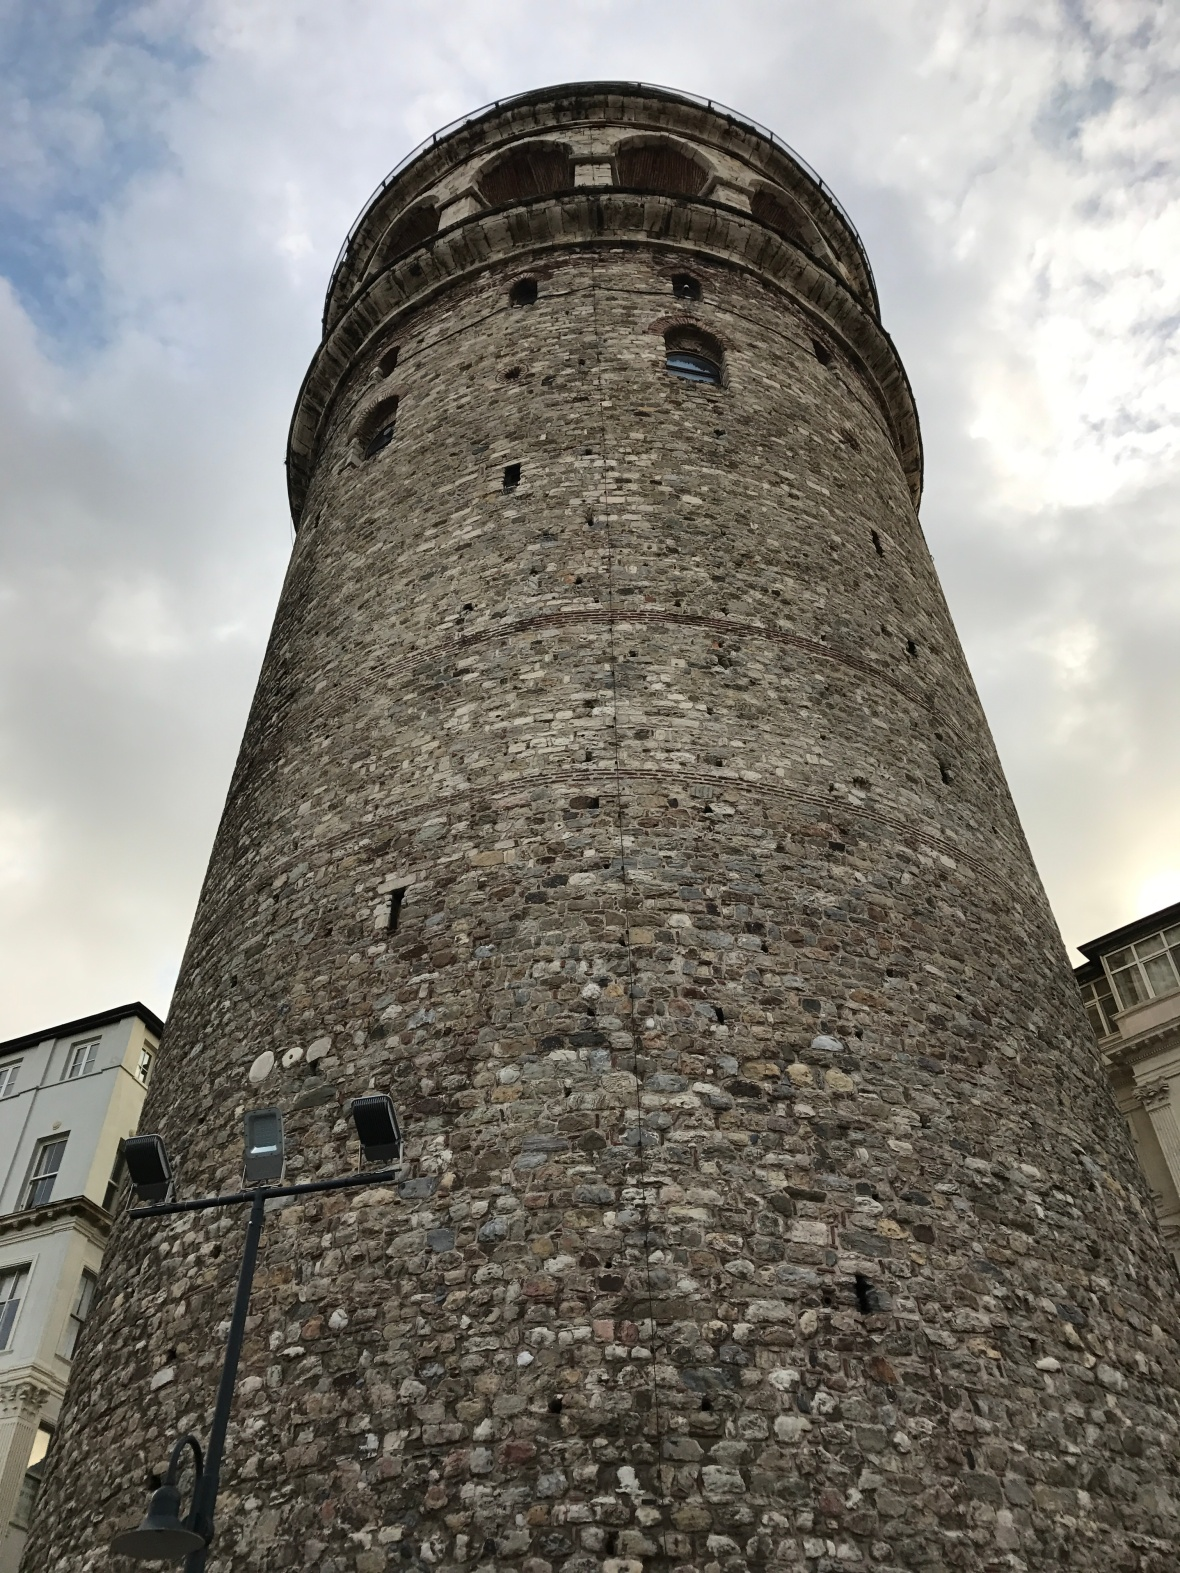 looking-up-at-the-galata-tower-istanbul-turkey